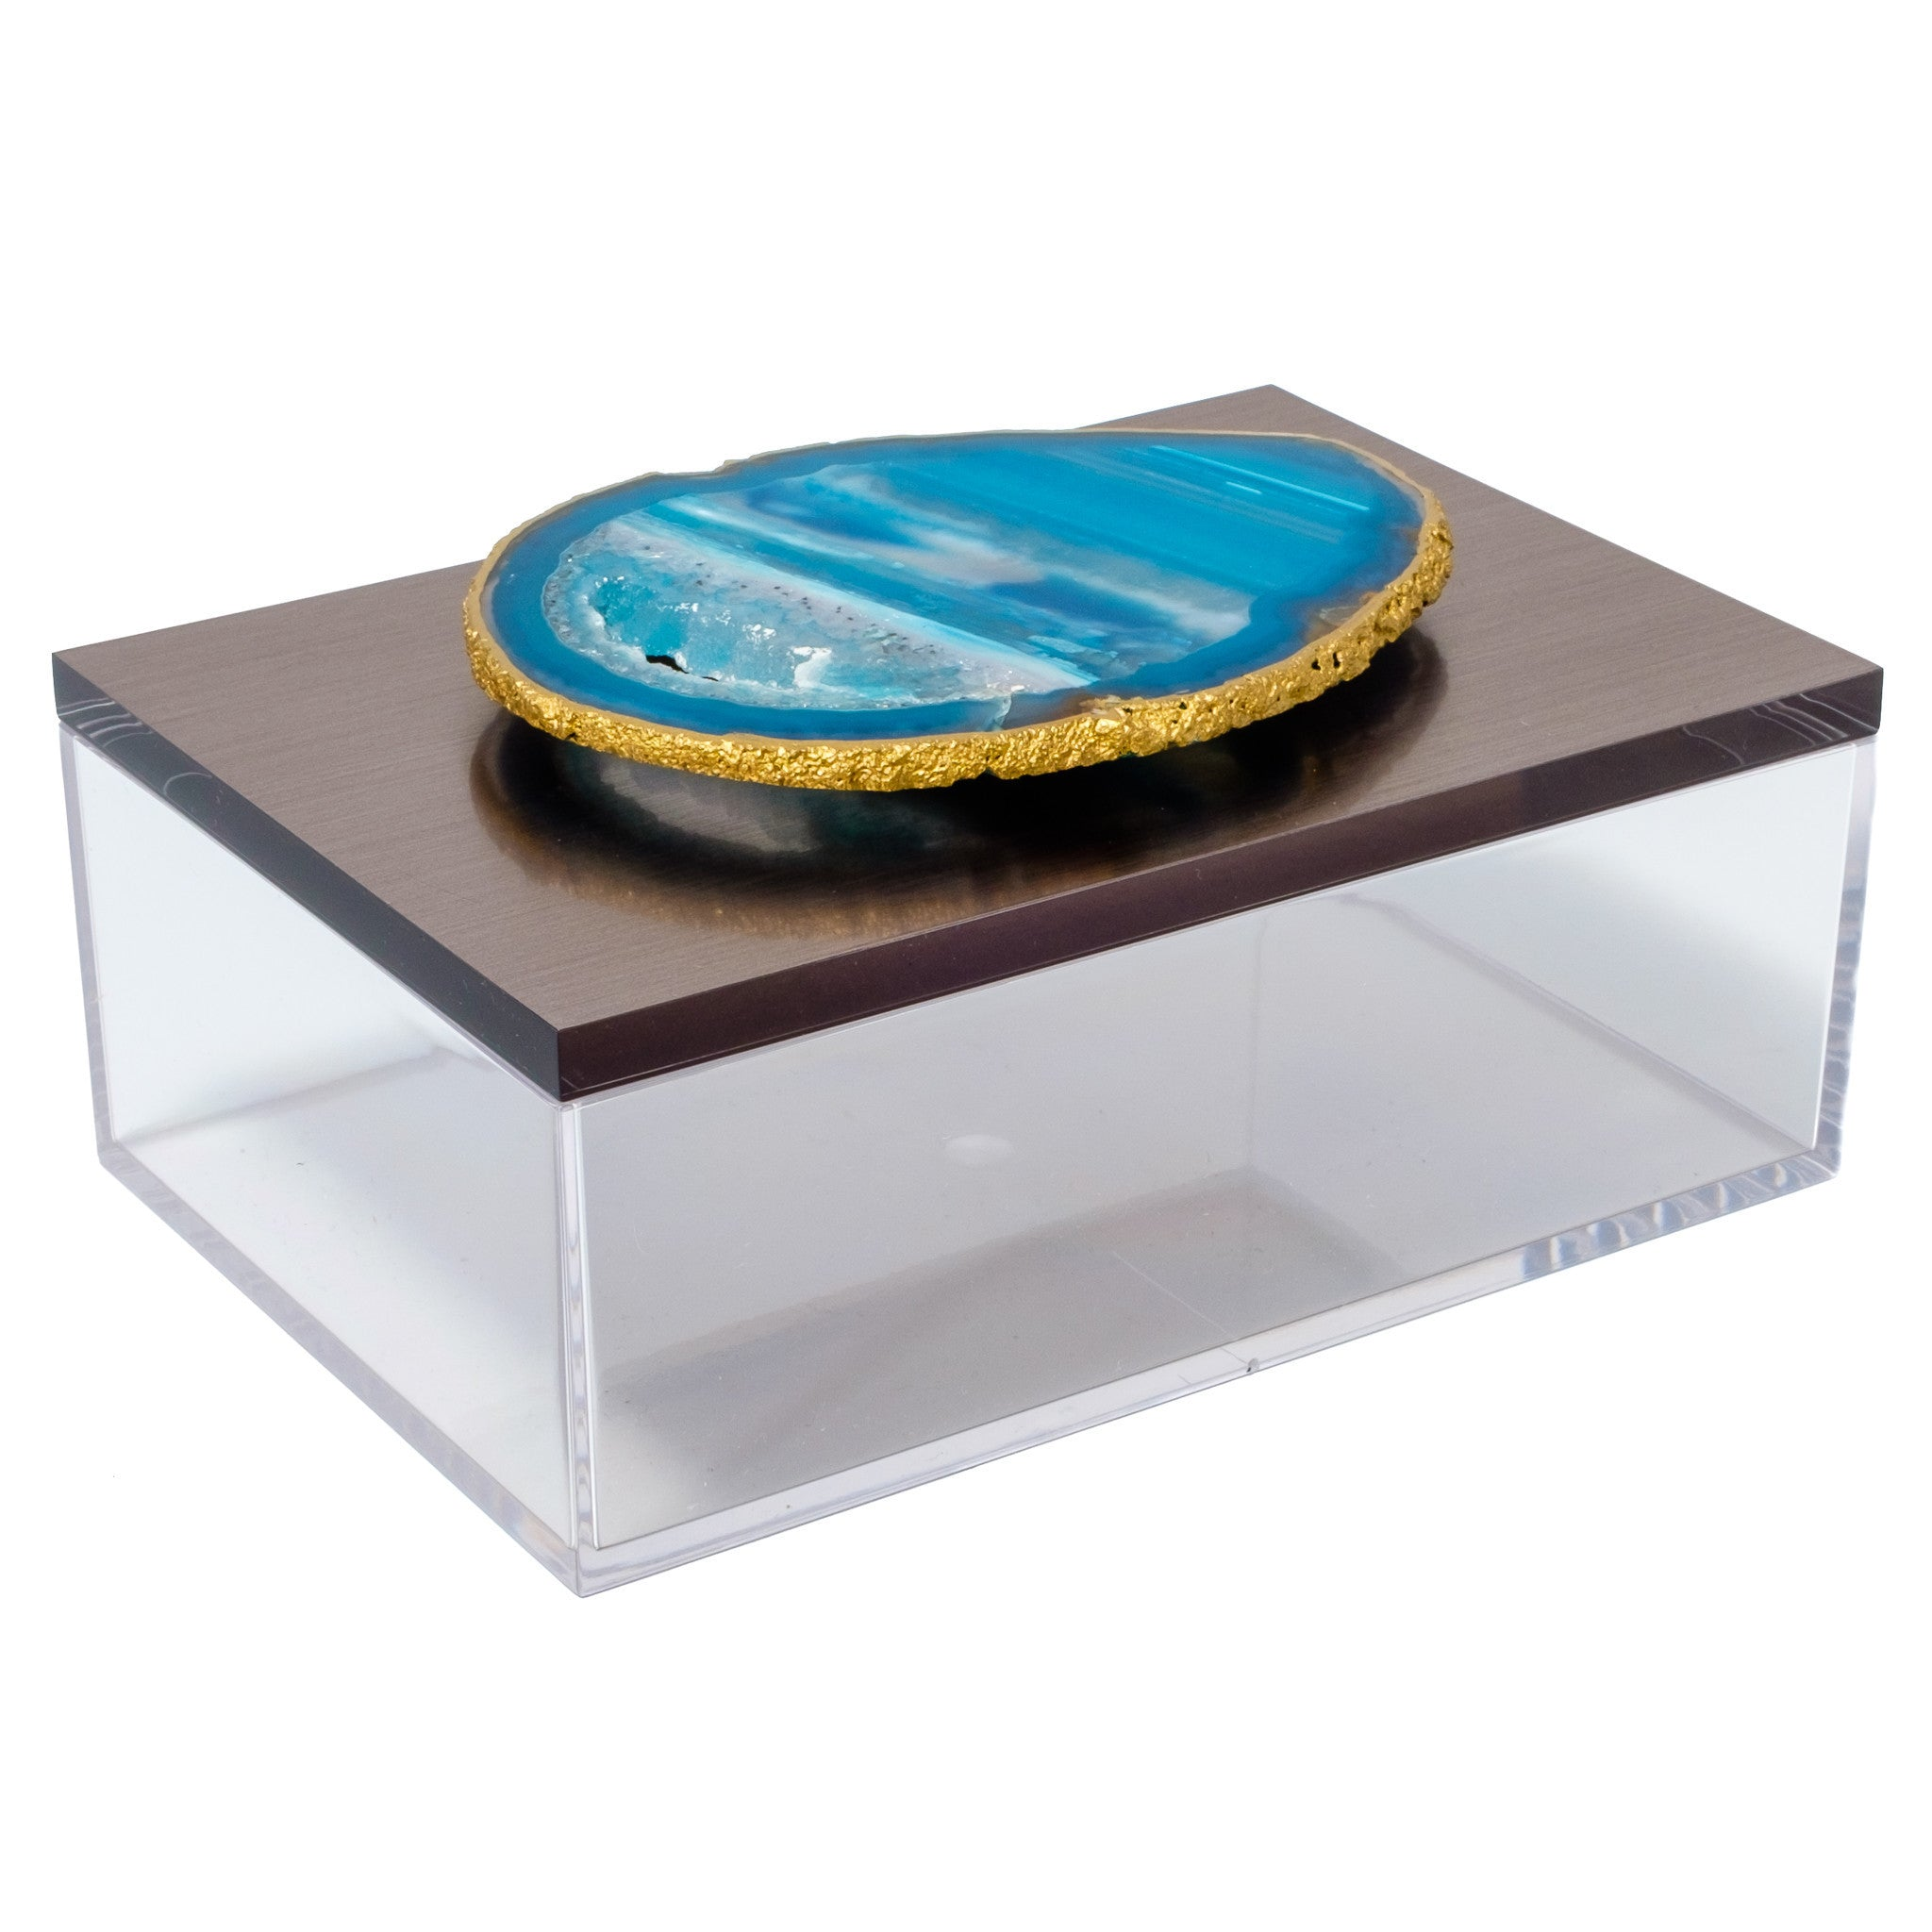 Large Acrylic Gun Metal Gray Box w/ Teal Agate